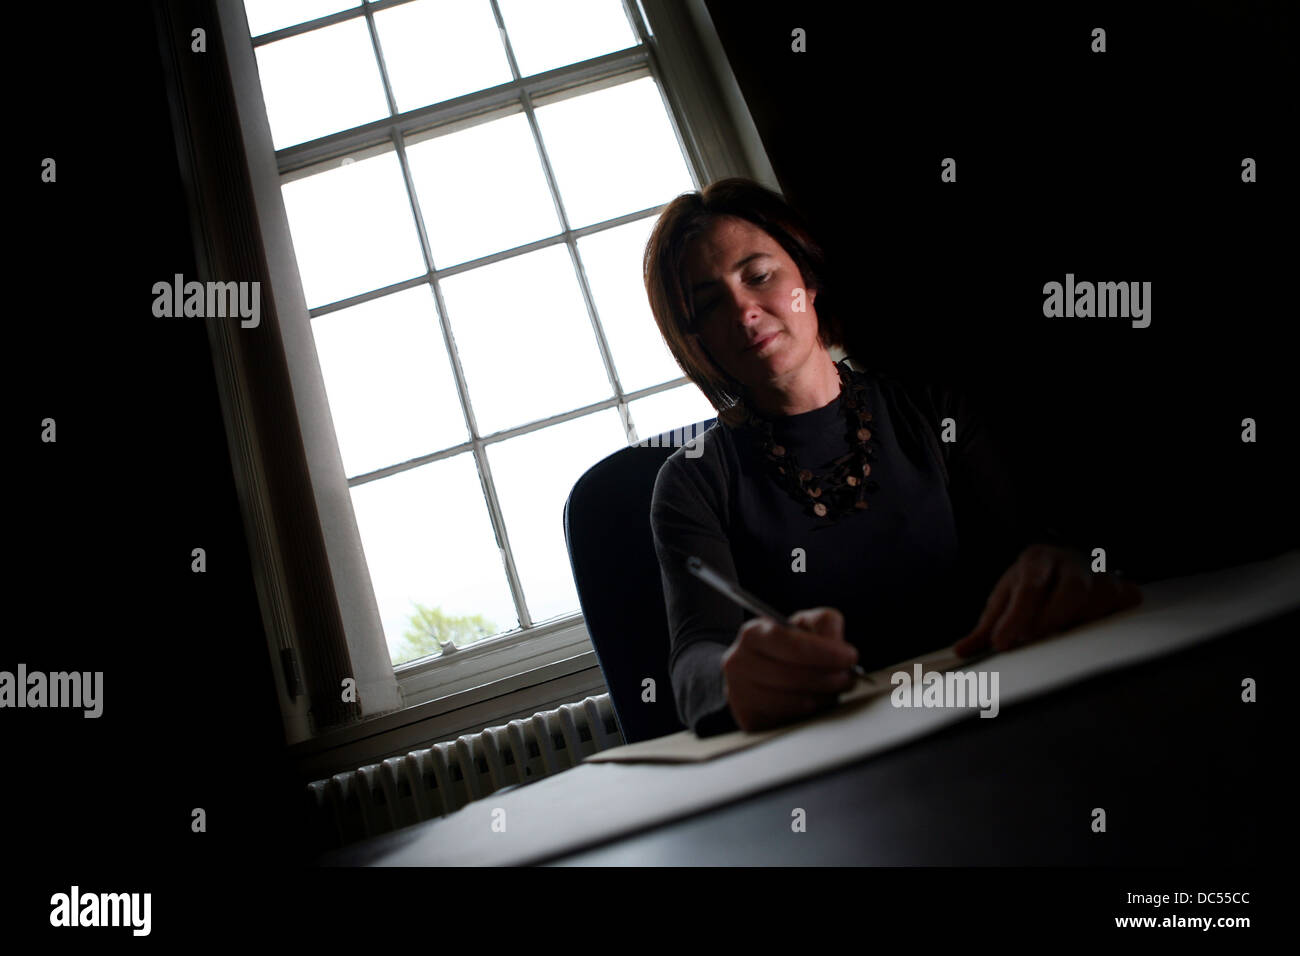 Cllr Susan Williams , leader of Trafford Council. Pictured at Trafford Town Hall - Stock Image